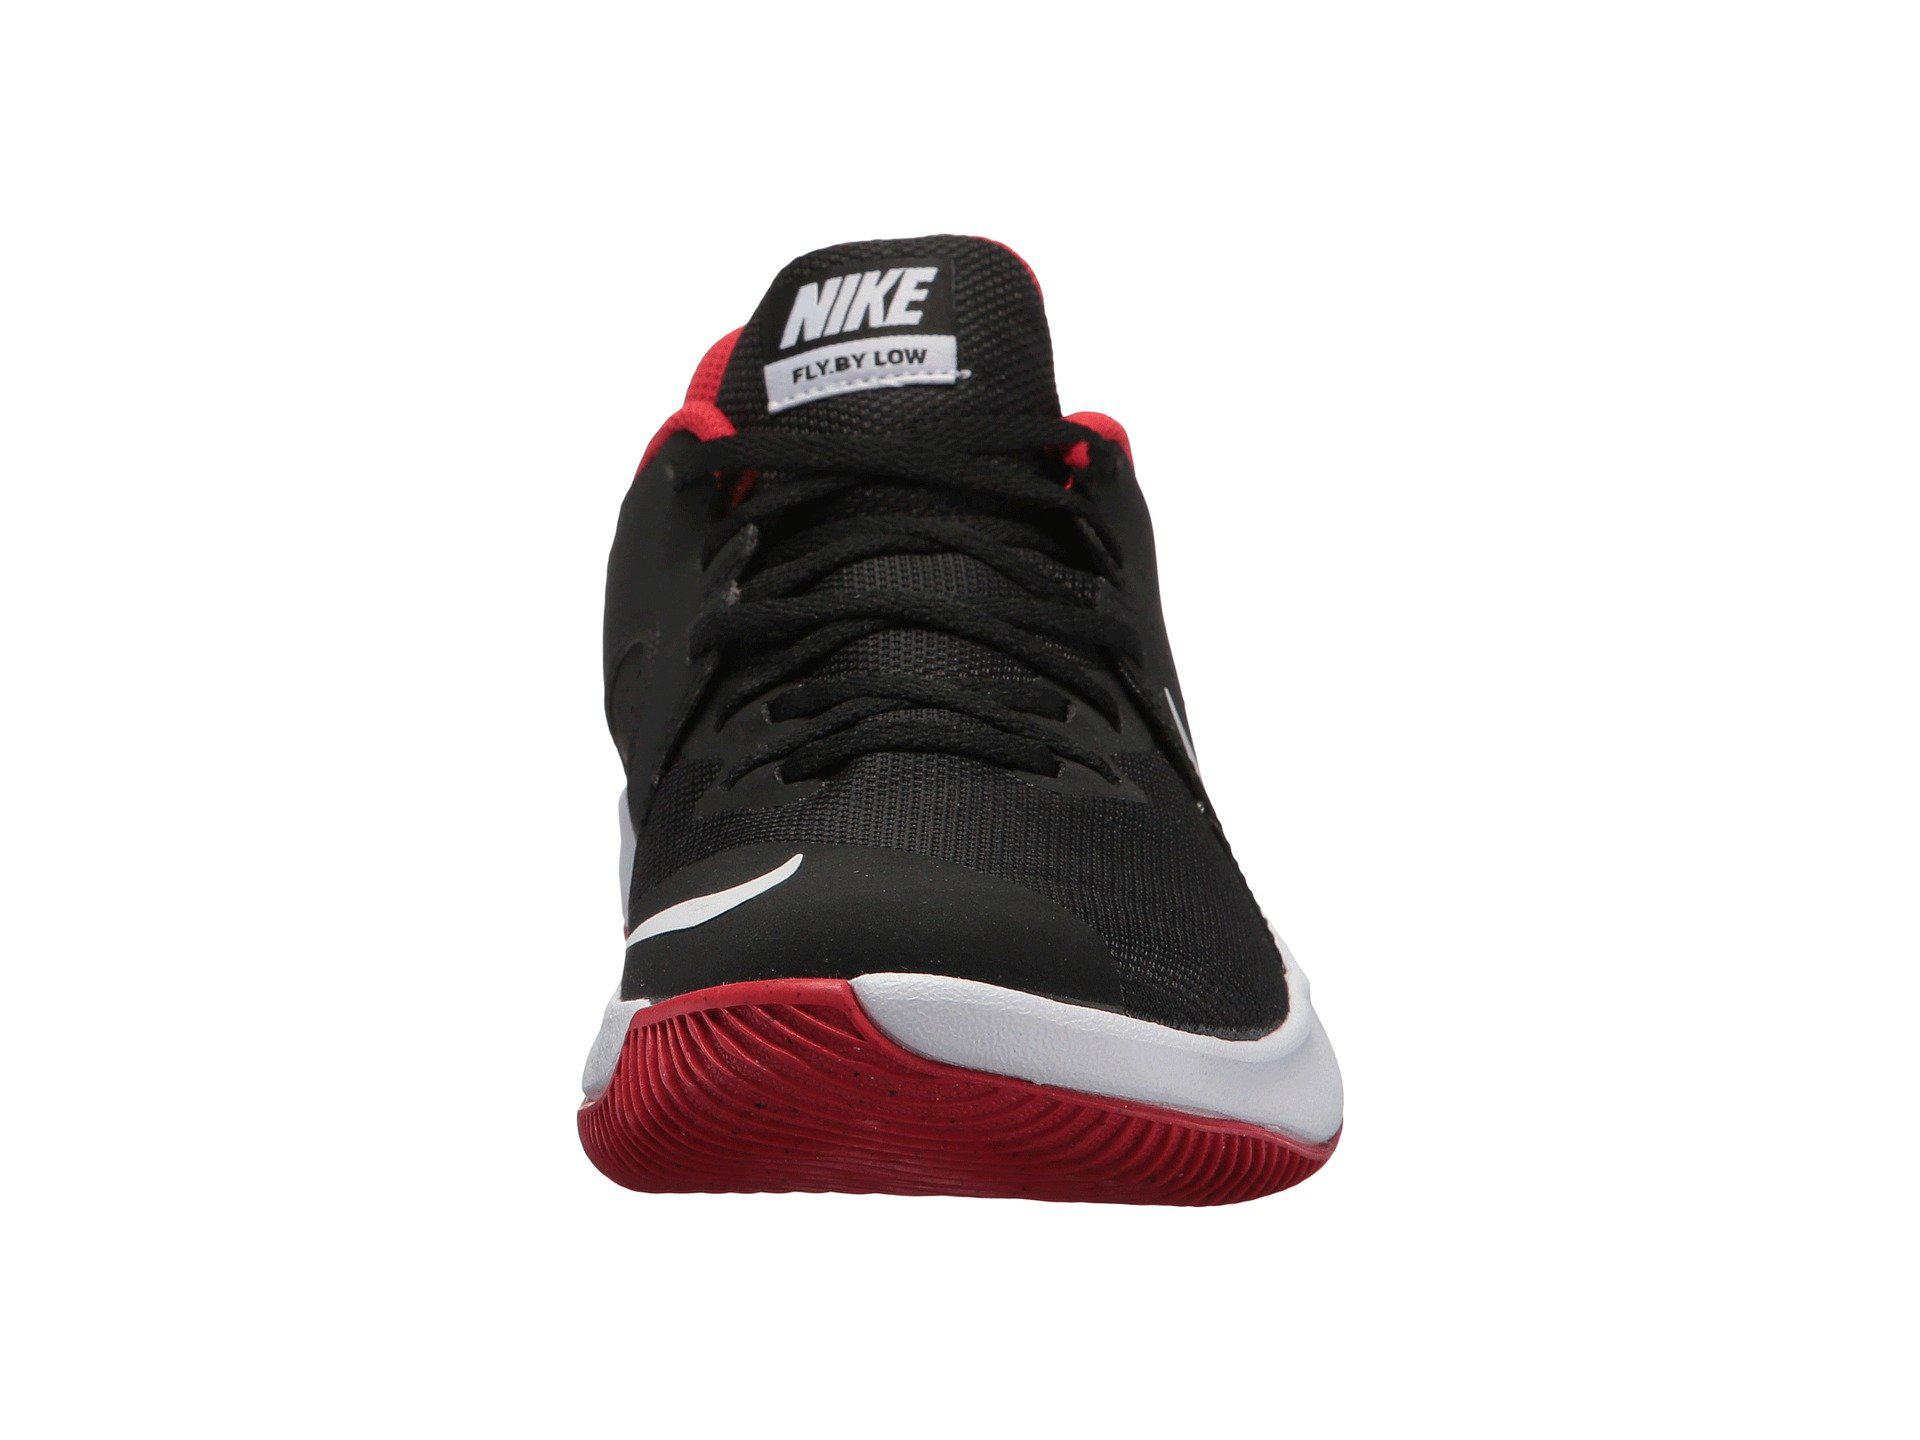 723e3aa81251 Lyst - Nike Fly.by Low in Red for Men